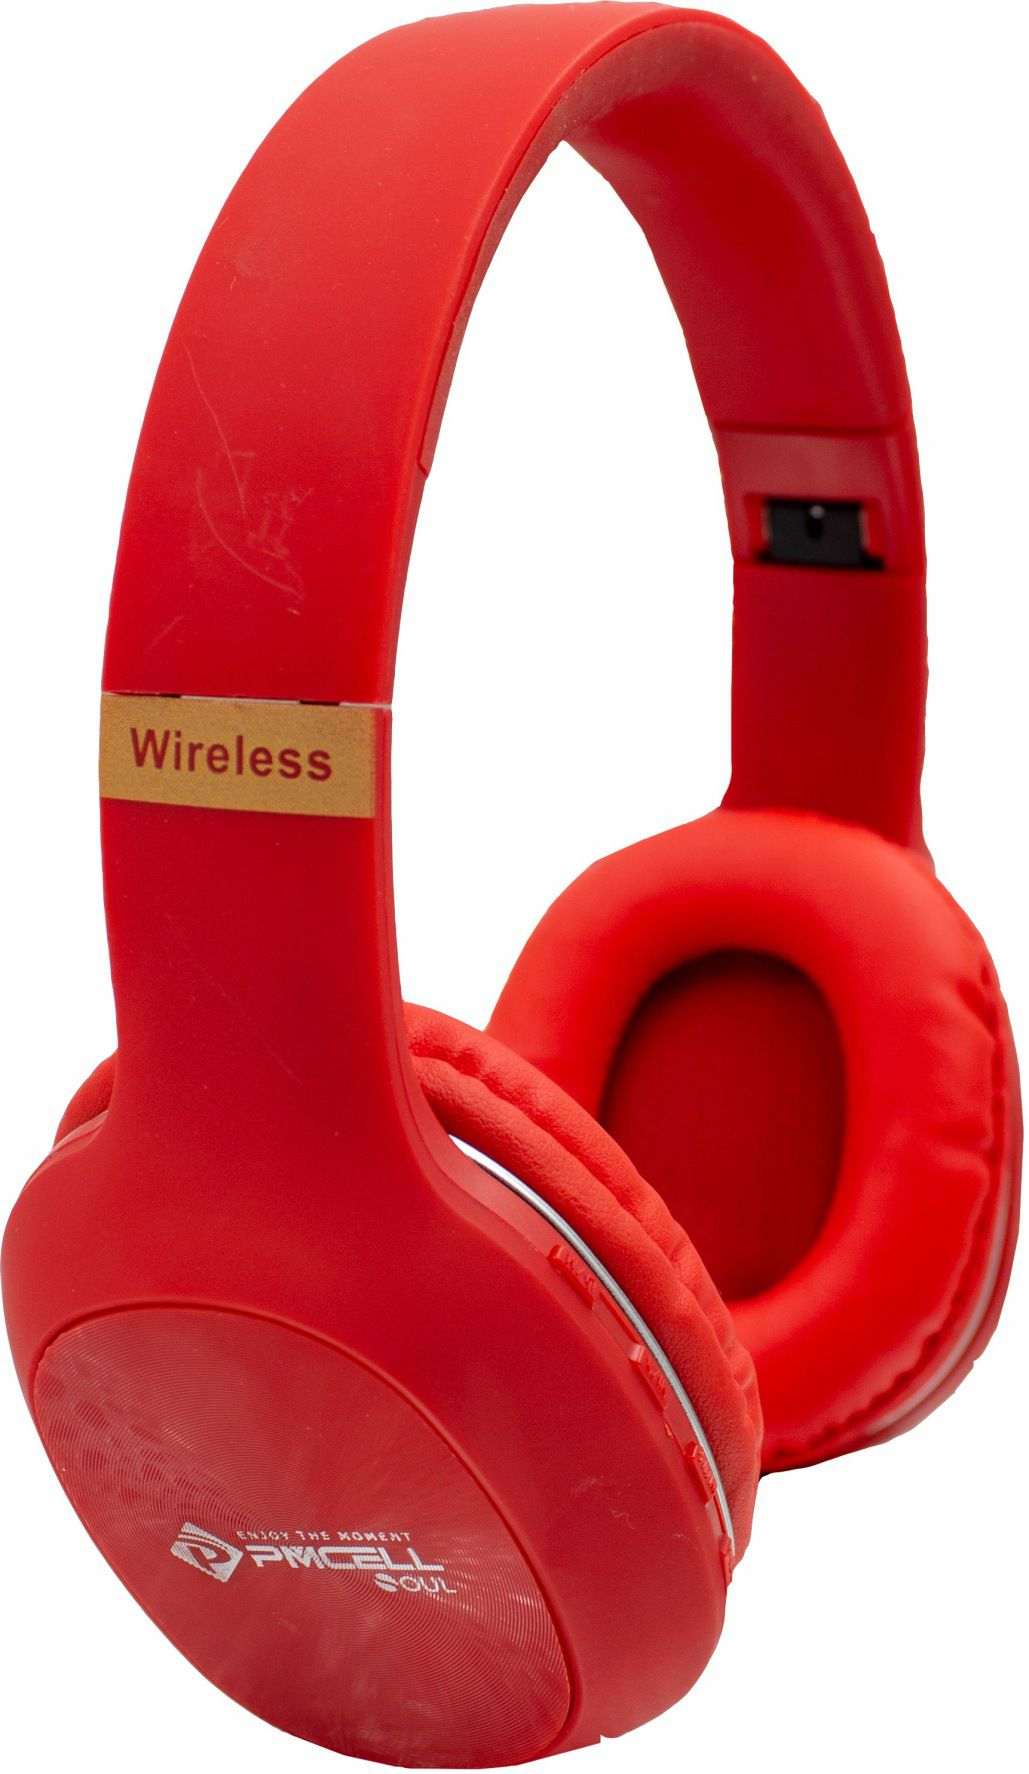 FONE WIRELESS STEREO HEADPHONE BLUETOOTH PMCELL HP43